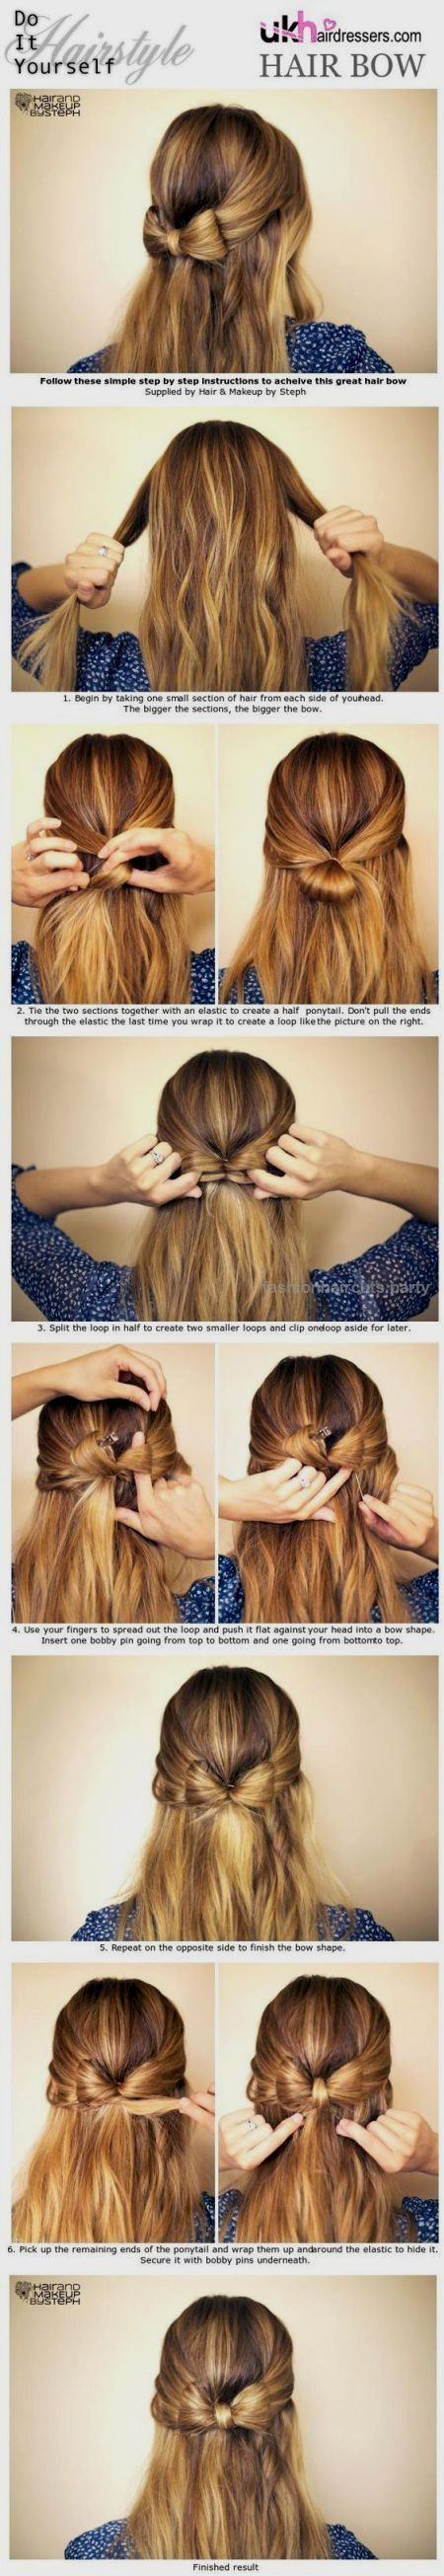 Cute and Easy Hairstyles for School 2017…  Cute and Easy Hairstyles for School 2017  http://www.fashionhaircuts.party/2017/05/20/cute-and-easy-hairstyles-for-school-2017-3/ (Beauty Hairstyles For Kids)